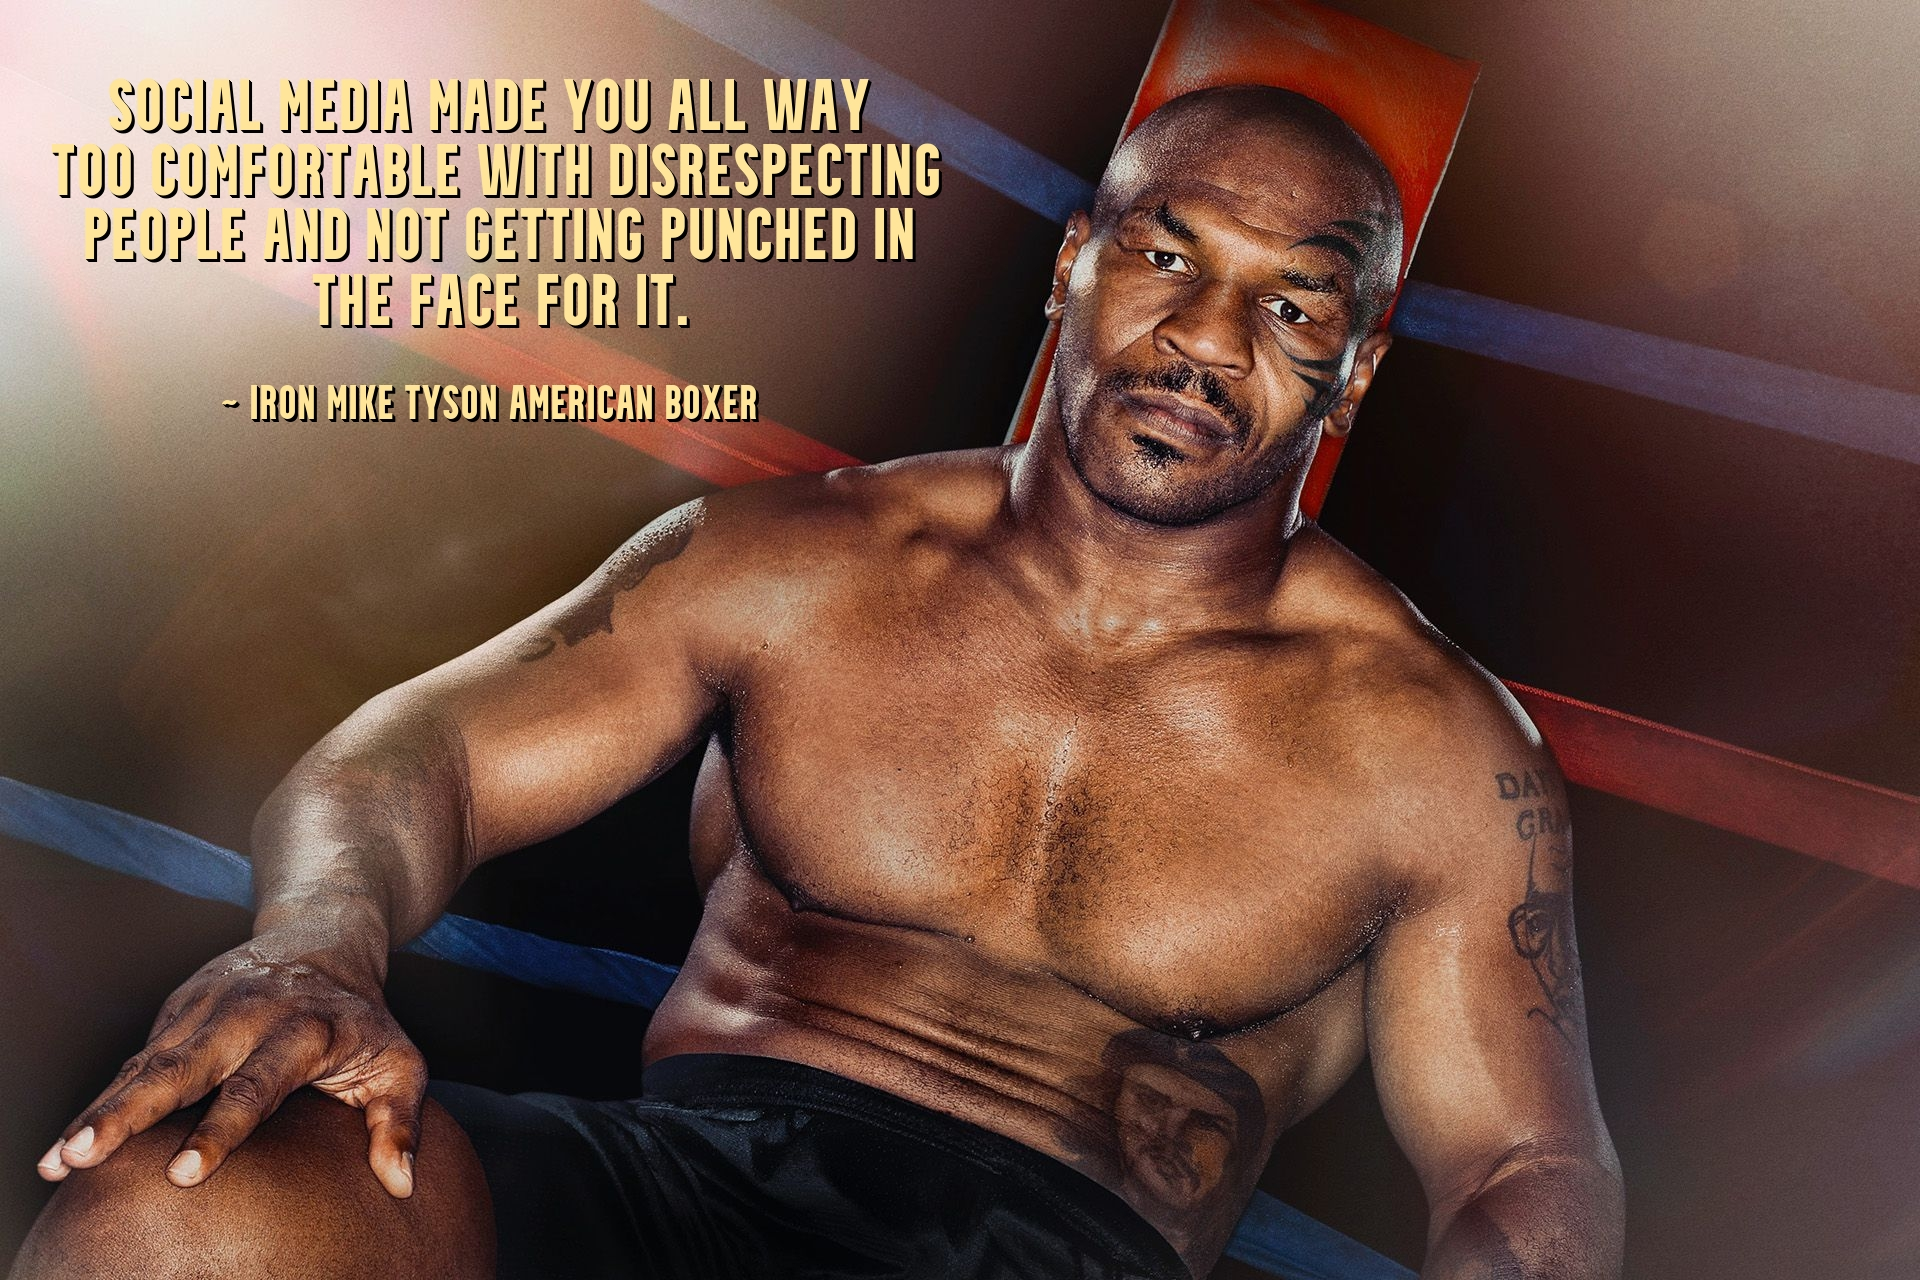 Social media made you all way too comfortable with disrespecting people and not getting punched in the face for it. ~Iron Mike Tyson American boxer [1920×1280]